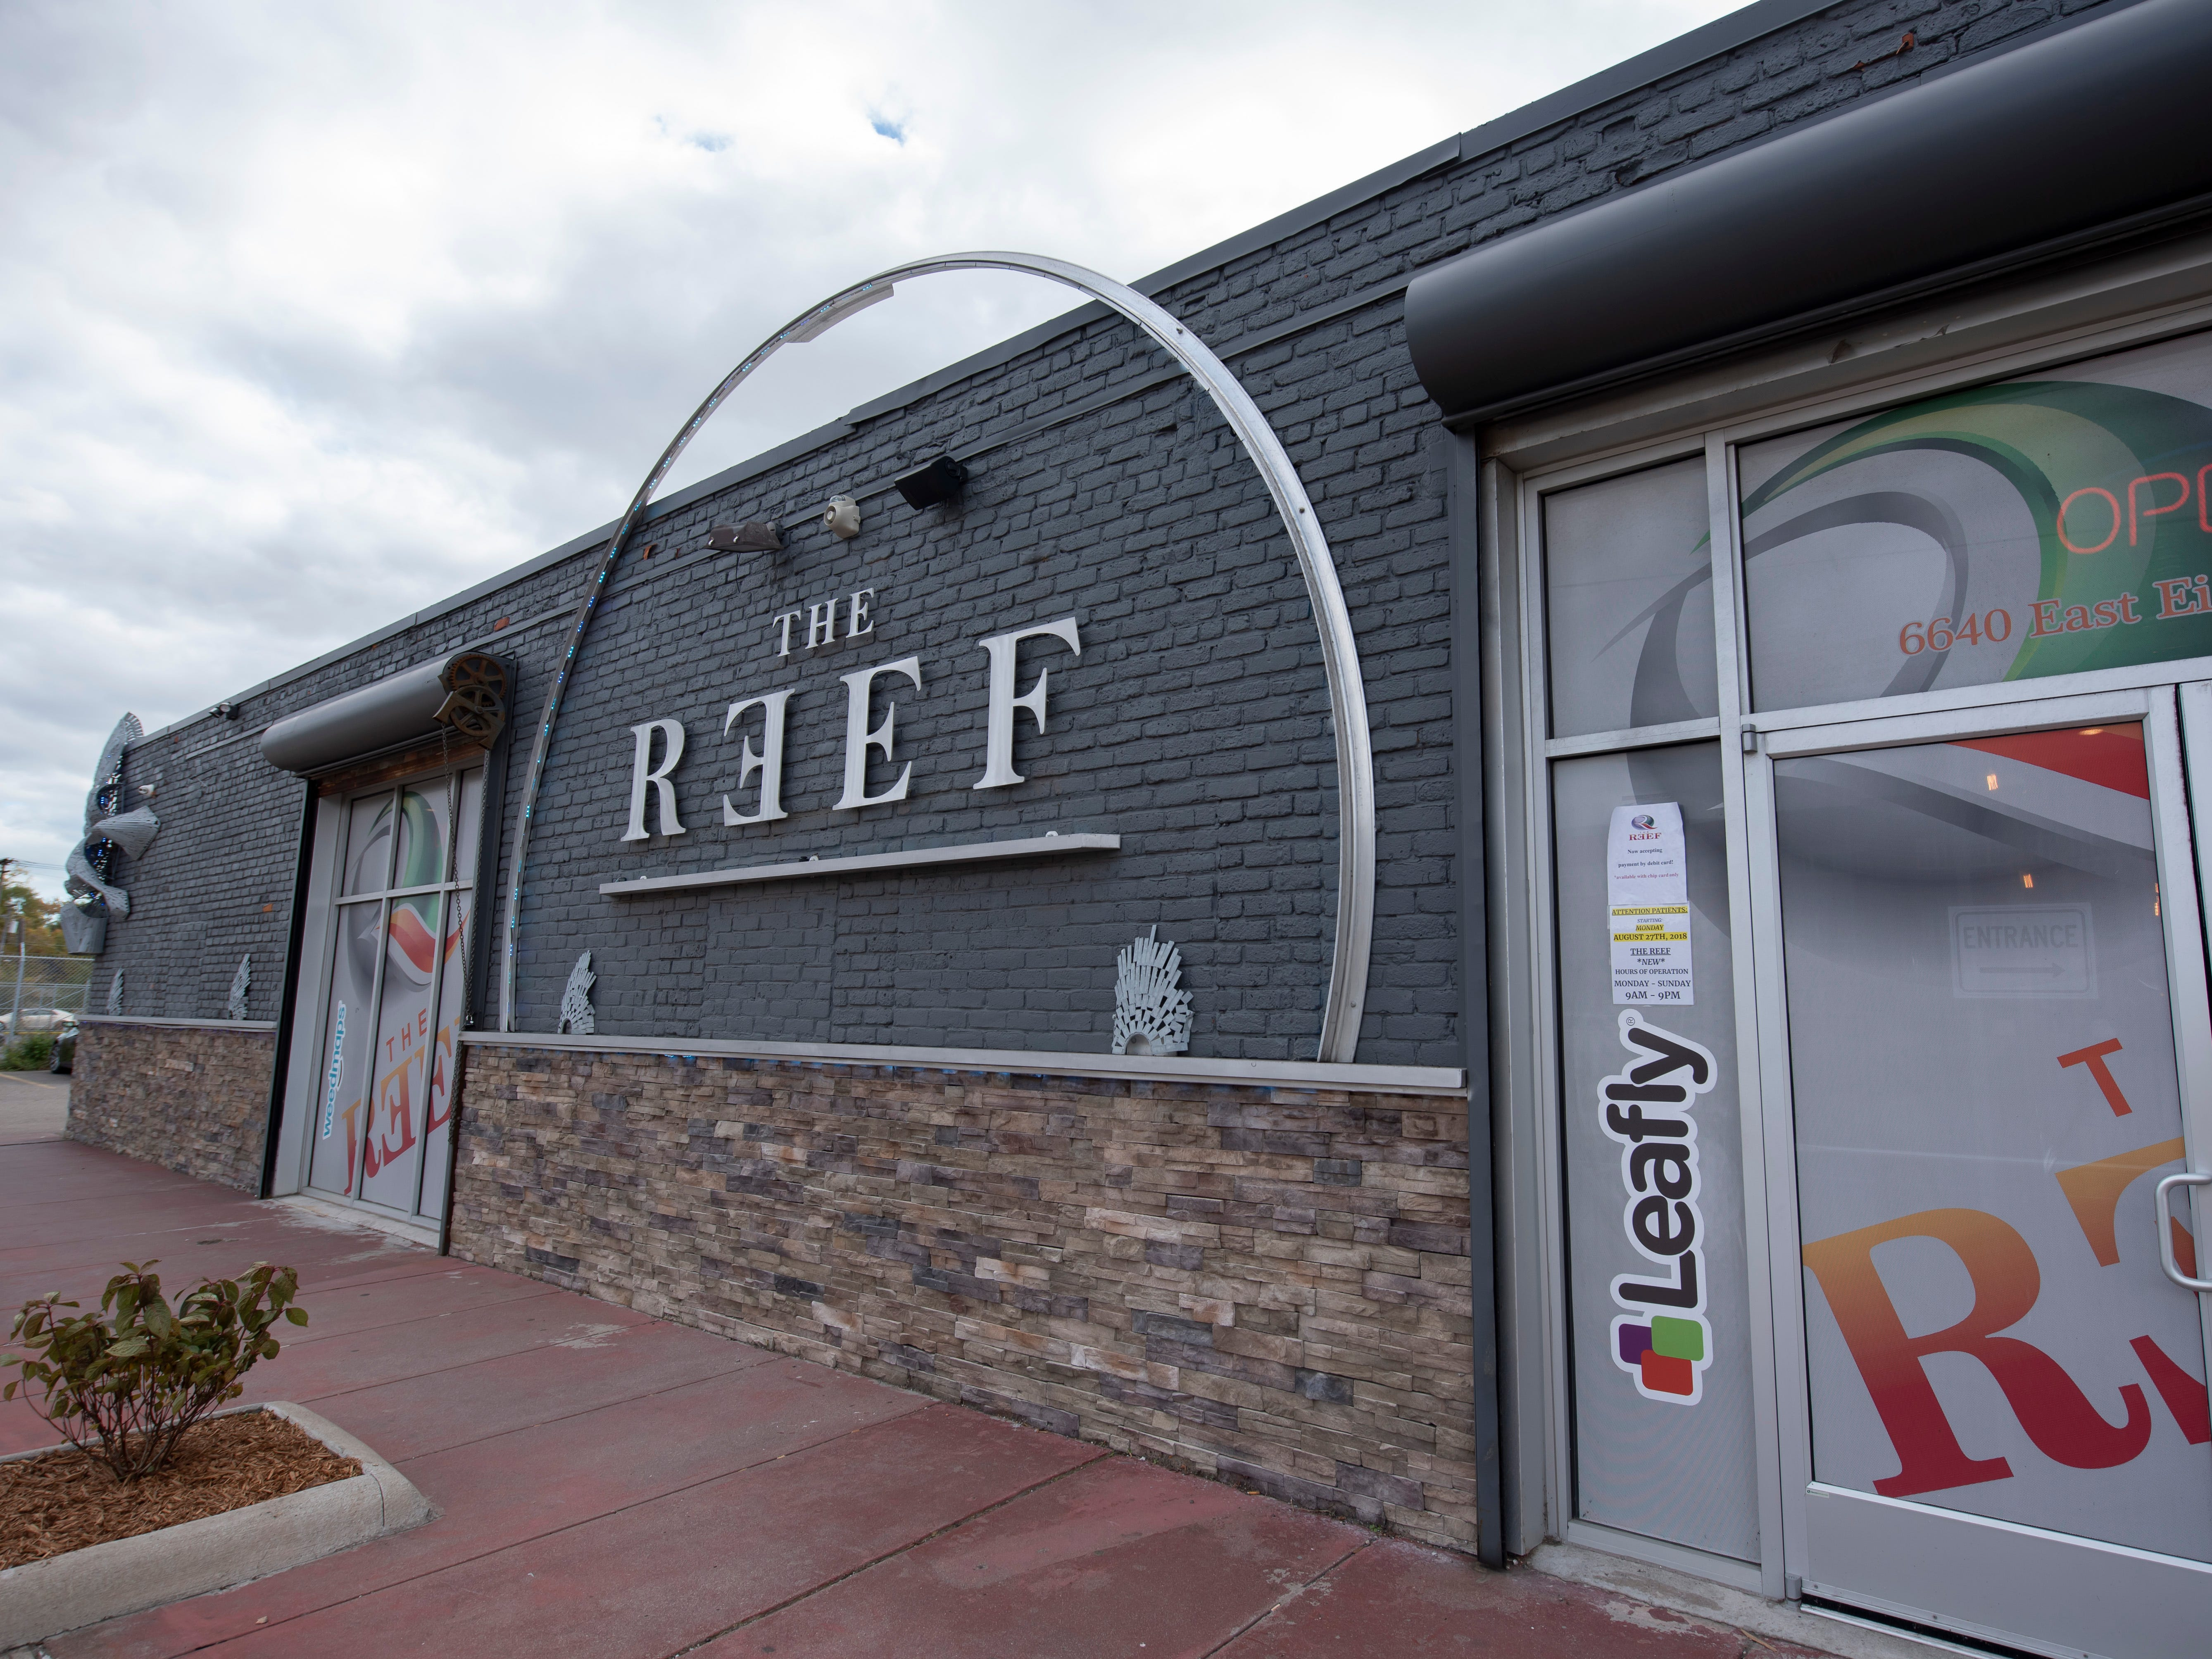 An exterior view of The Reef's marijuana dispensary at 6640 EightMile in Detroit.